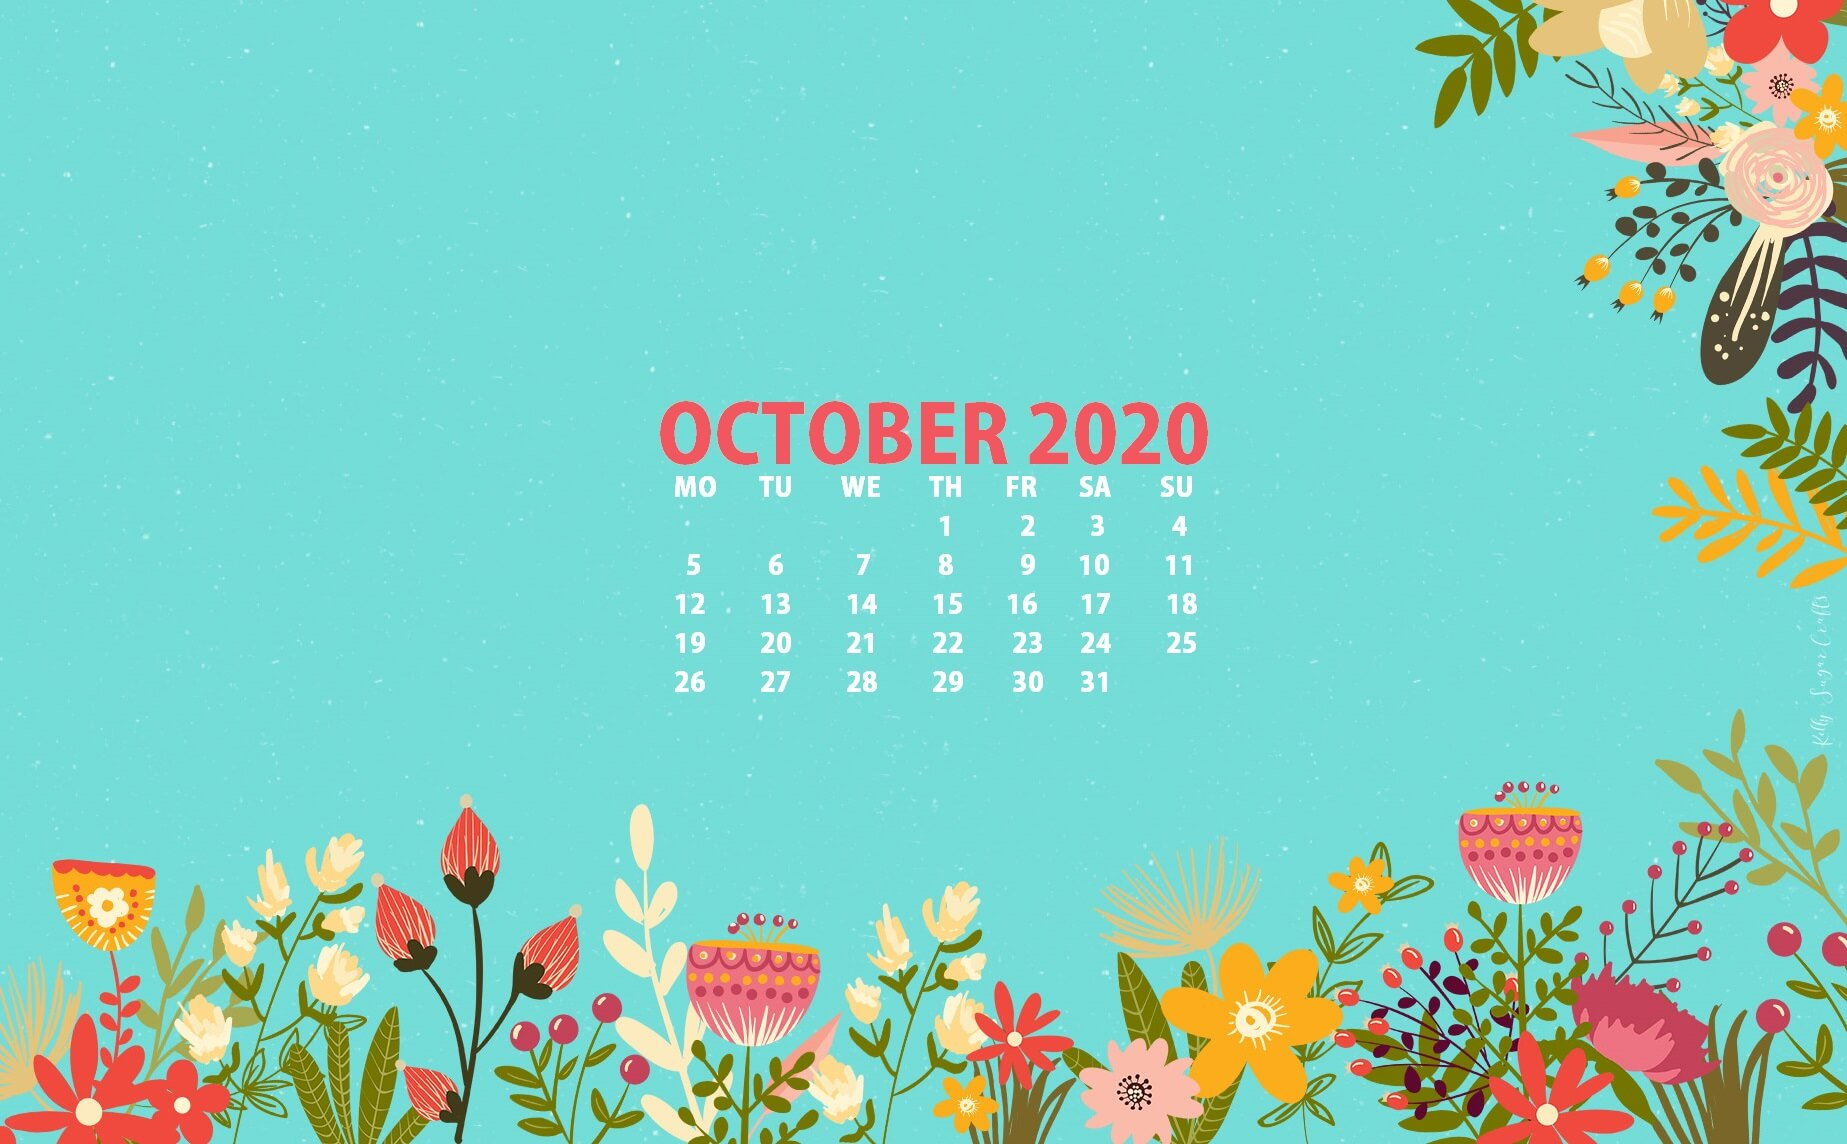 October 2020 Calendar Wallpaper for Desktop